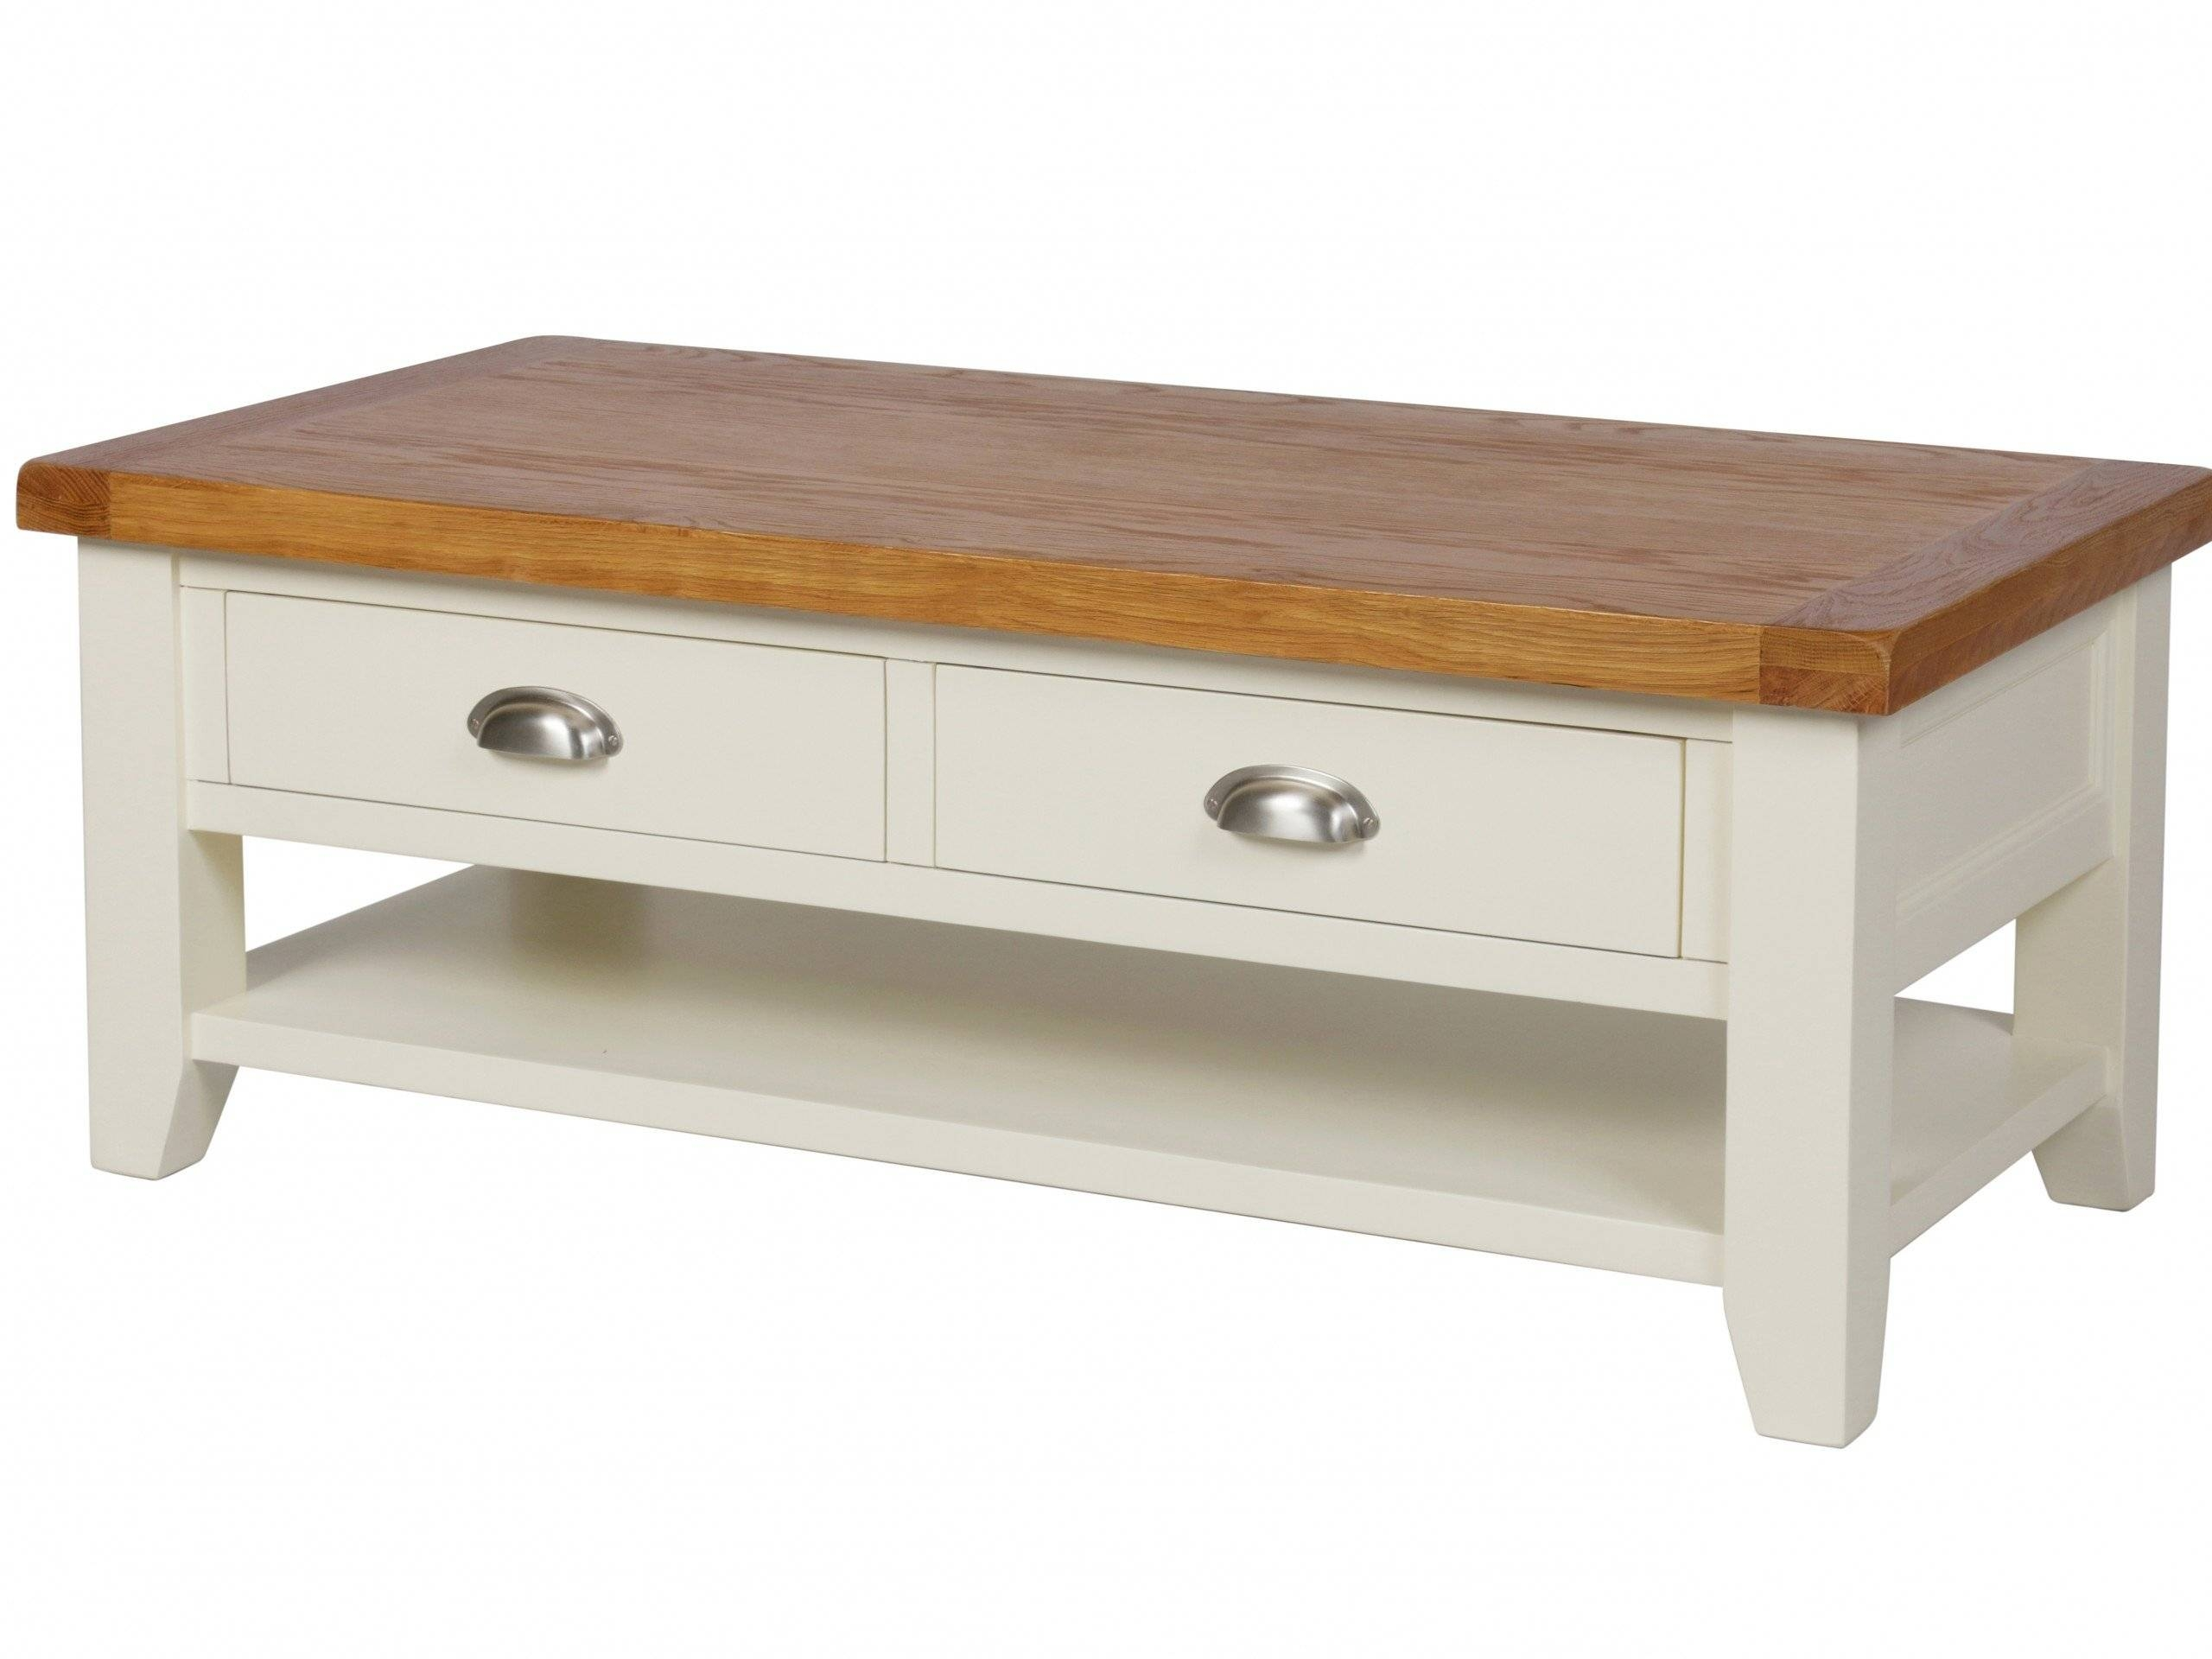 Country Oak Cream Painted Large 4 Drawer Coffee Table With Shelf with Oak Coffee Table With Shelf (Image 8 of 15)